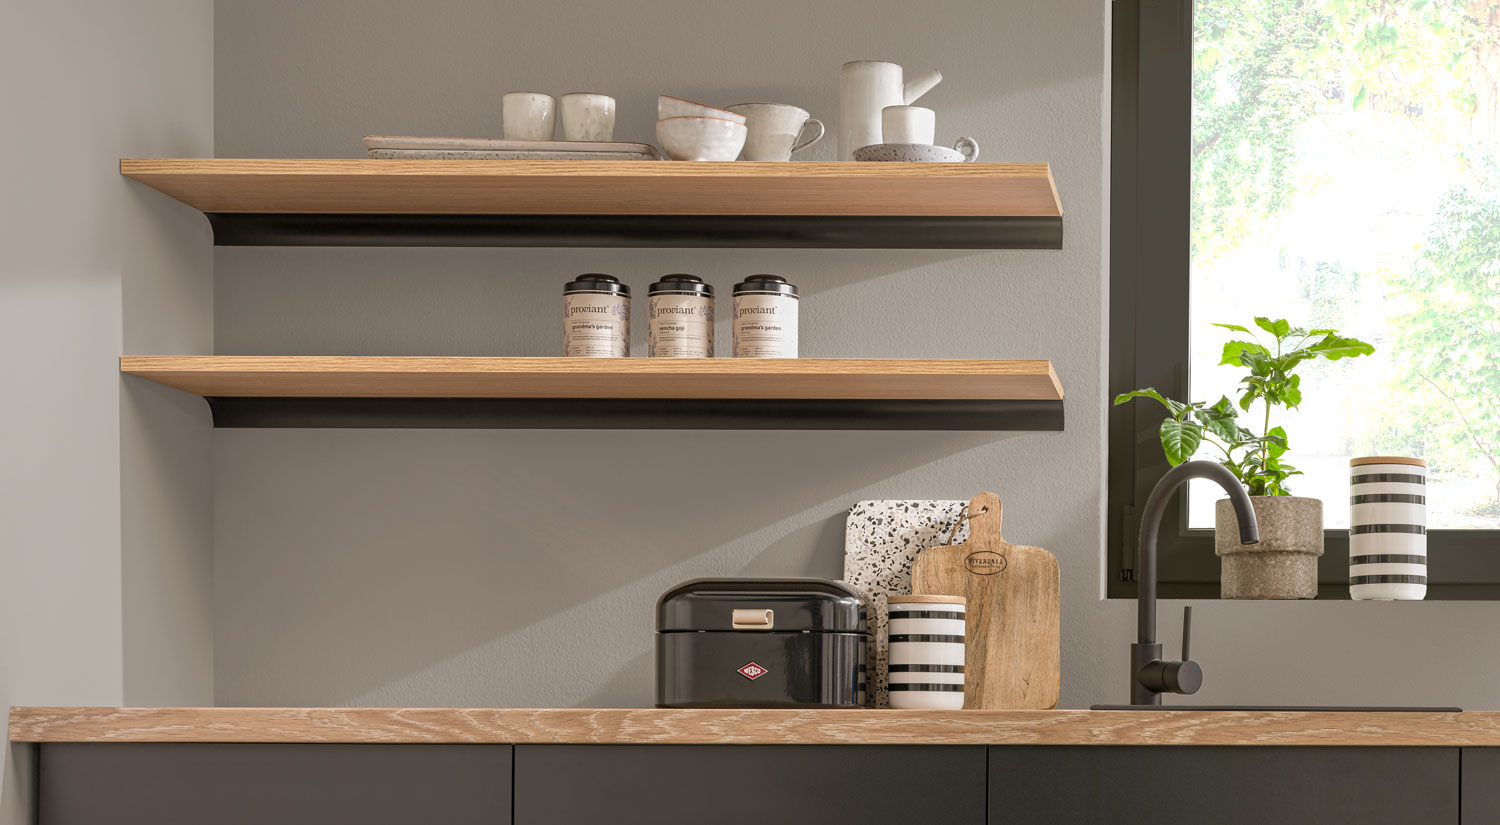 Kitchen Shelves Great Selection Of Kitchen Wall Shelves Regalraum